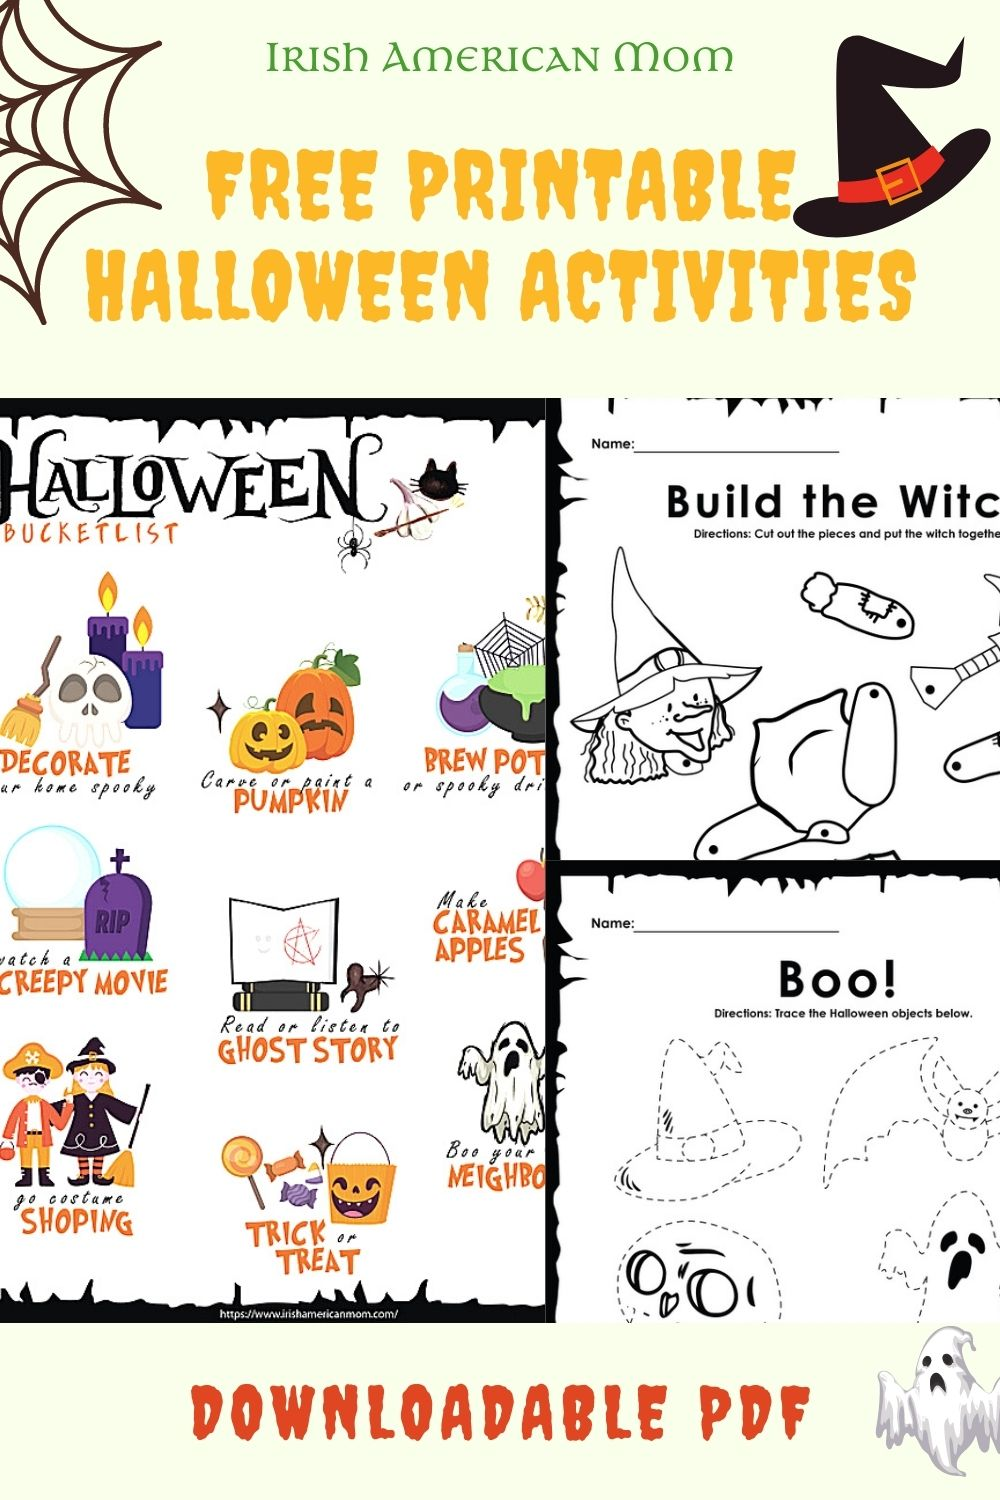 A three photo collage featuring Halloween inspired activity sheets for children